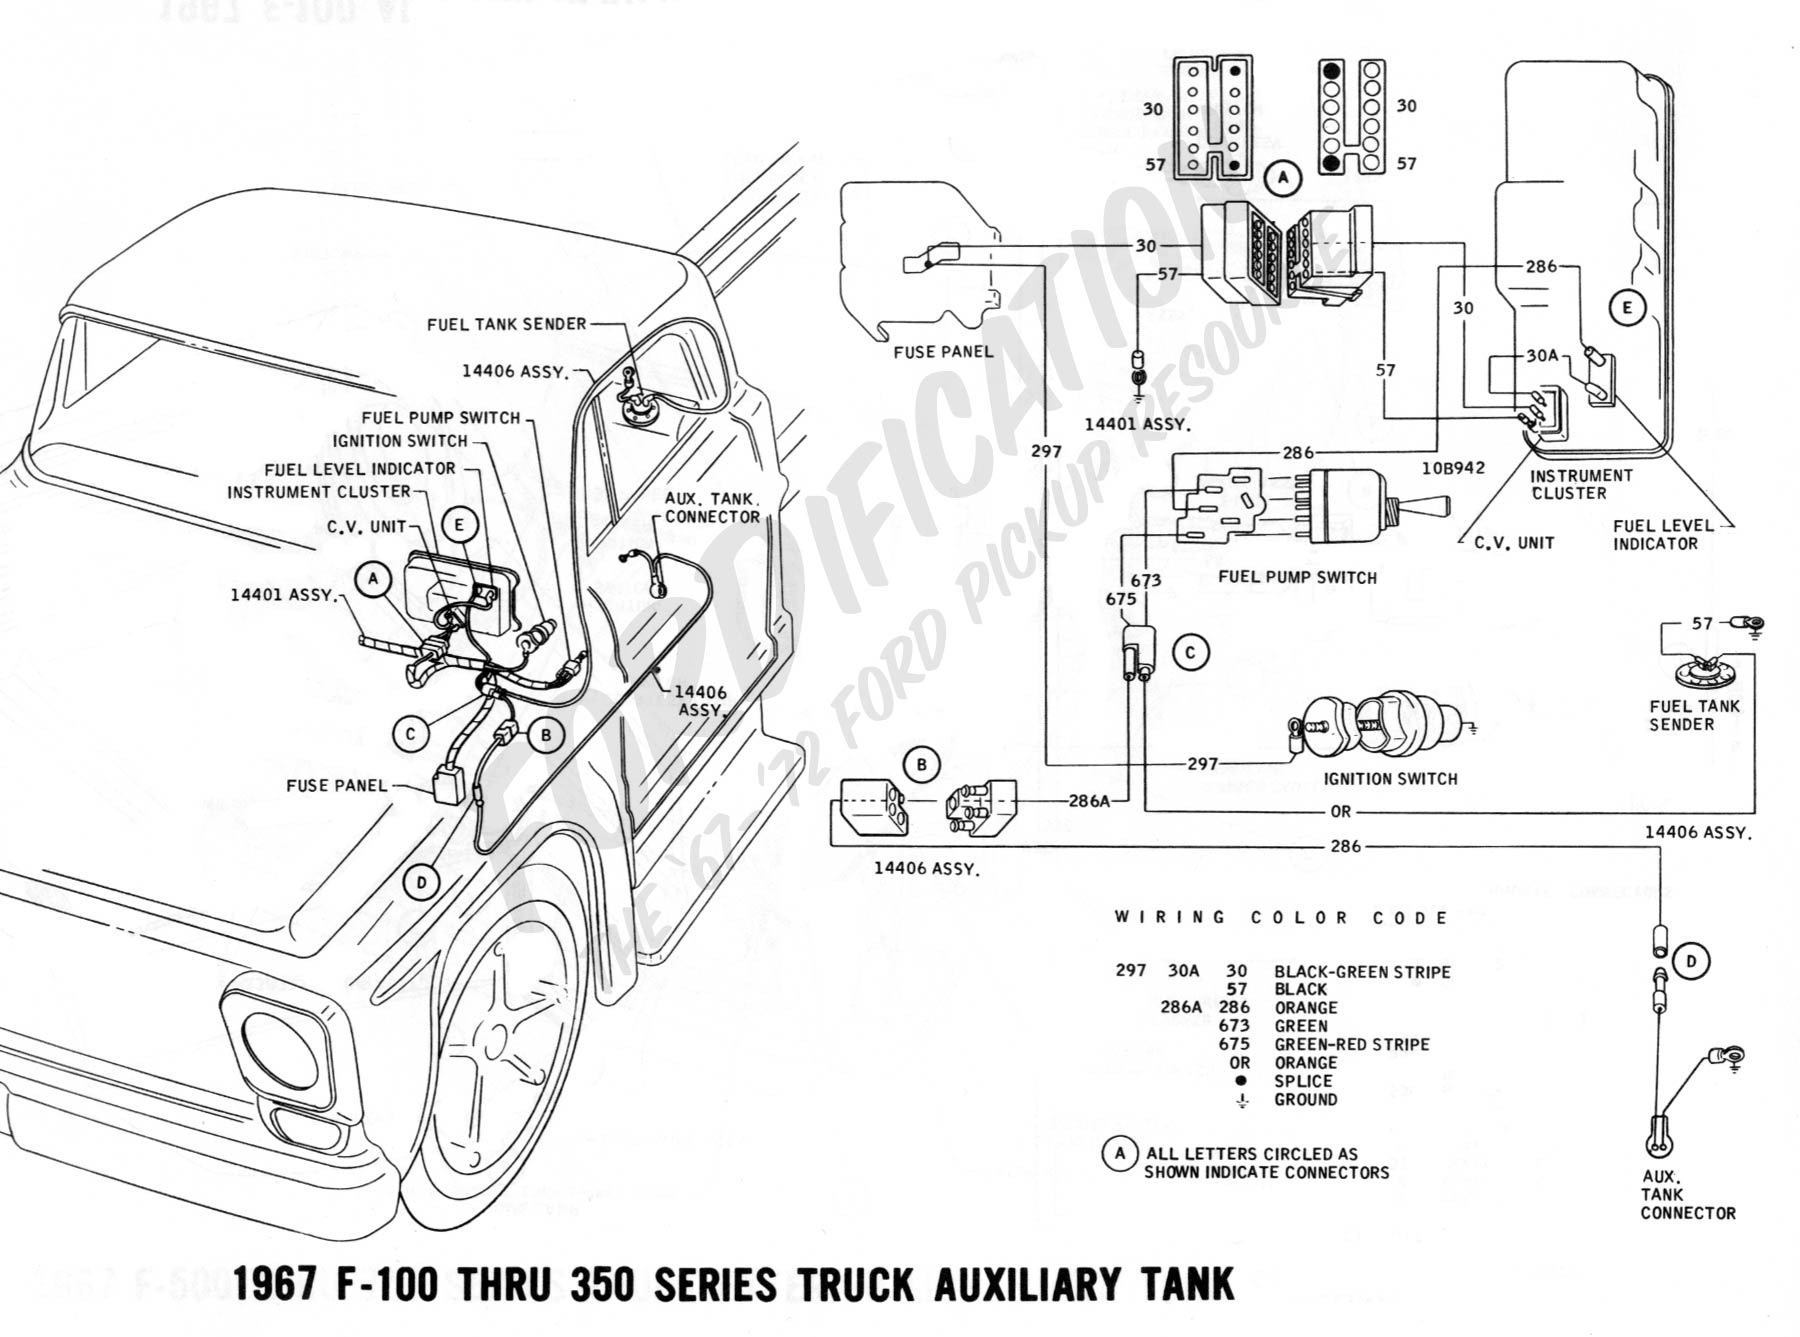 1967 Ford F150 Wiring Diagram Reinvent Your 2004 Blend Door Schematic Truck Technical Drawings And Schematics Section H Rh Fordification Com F 150